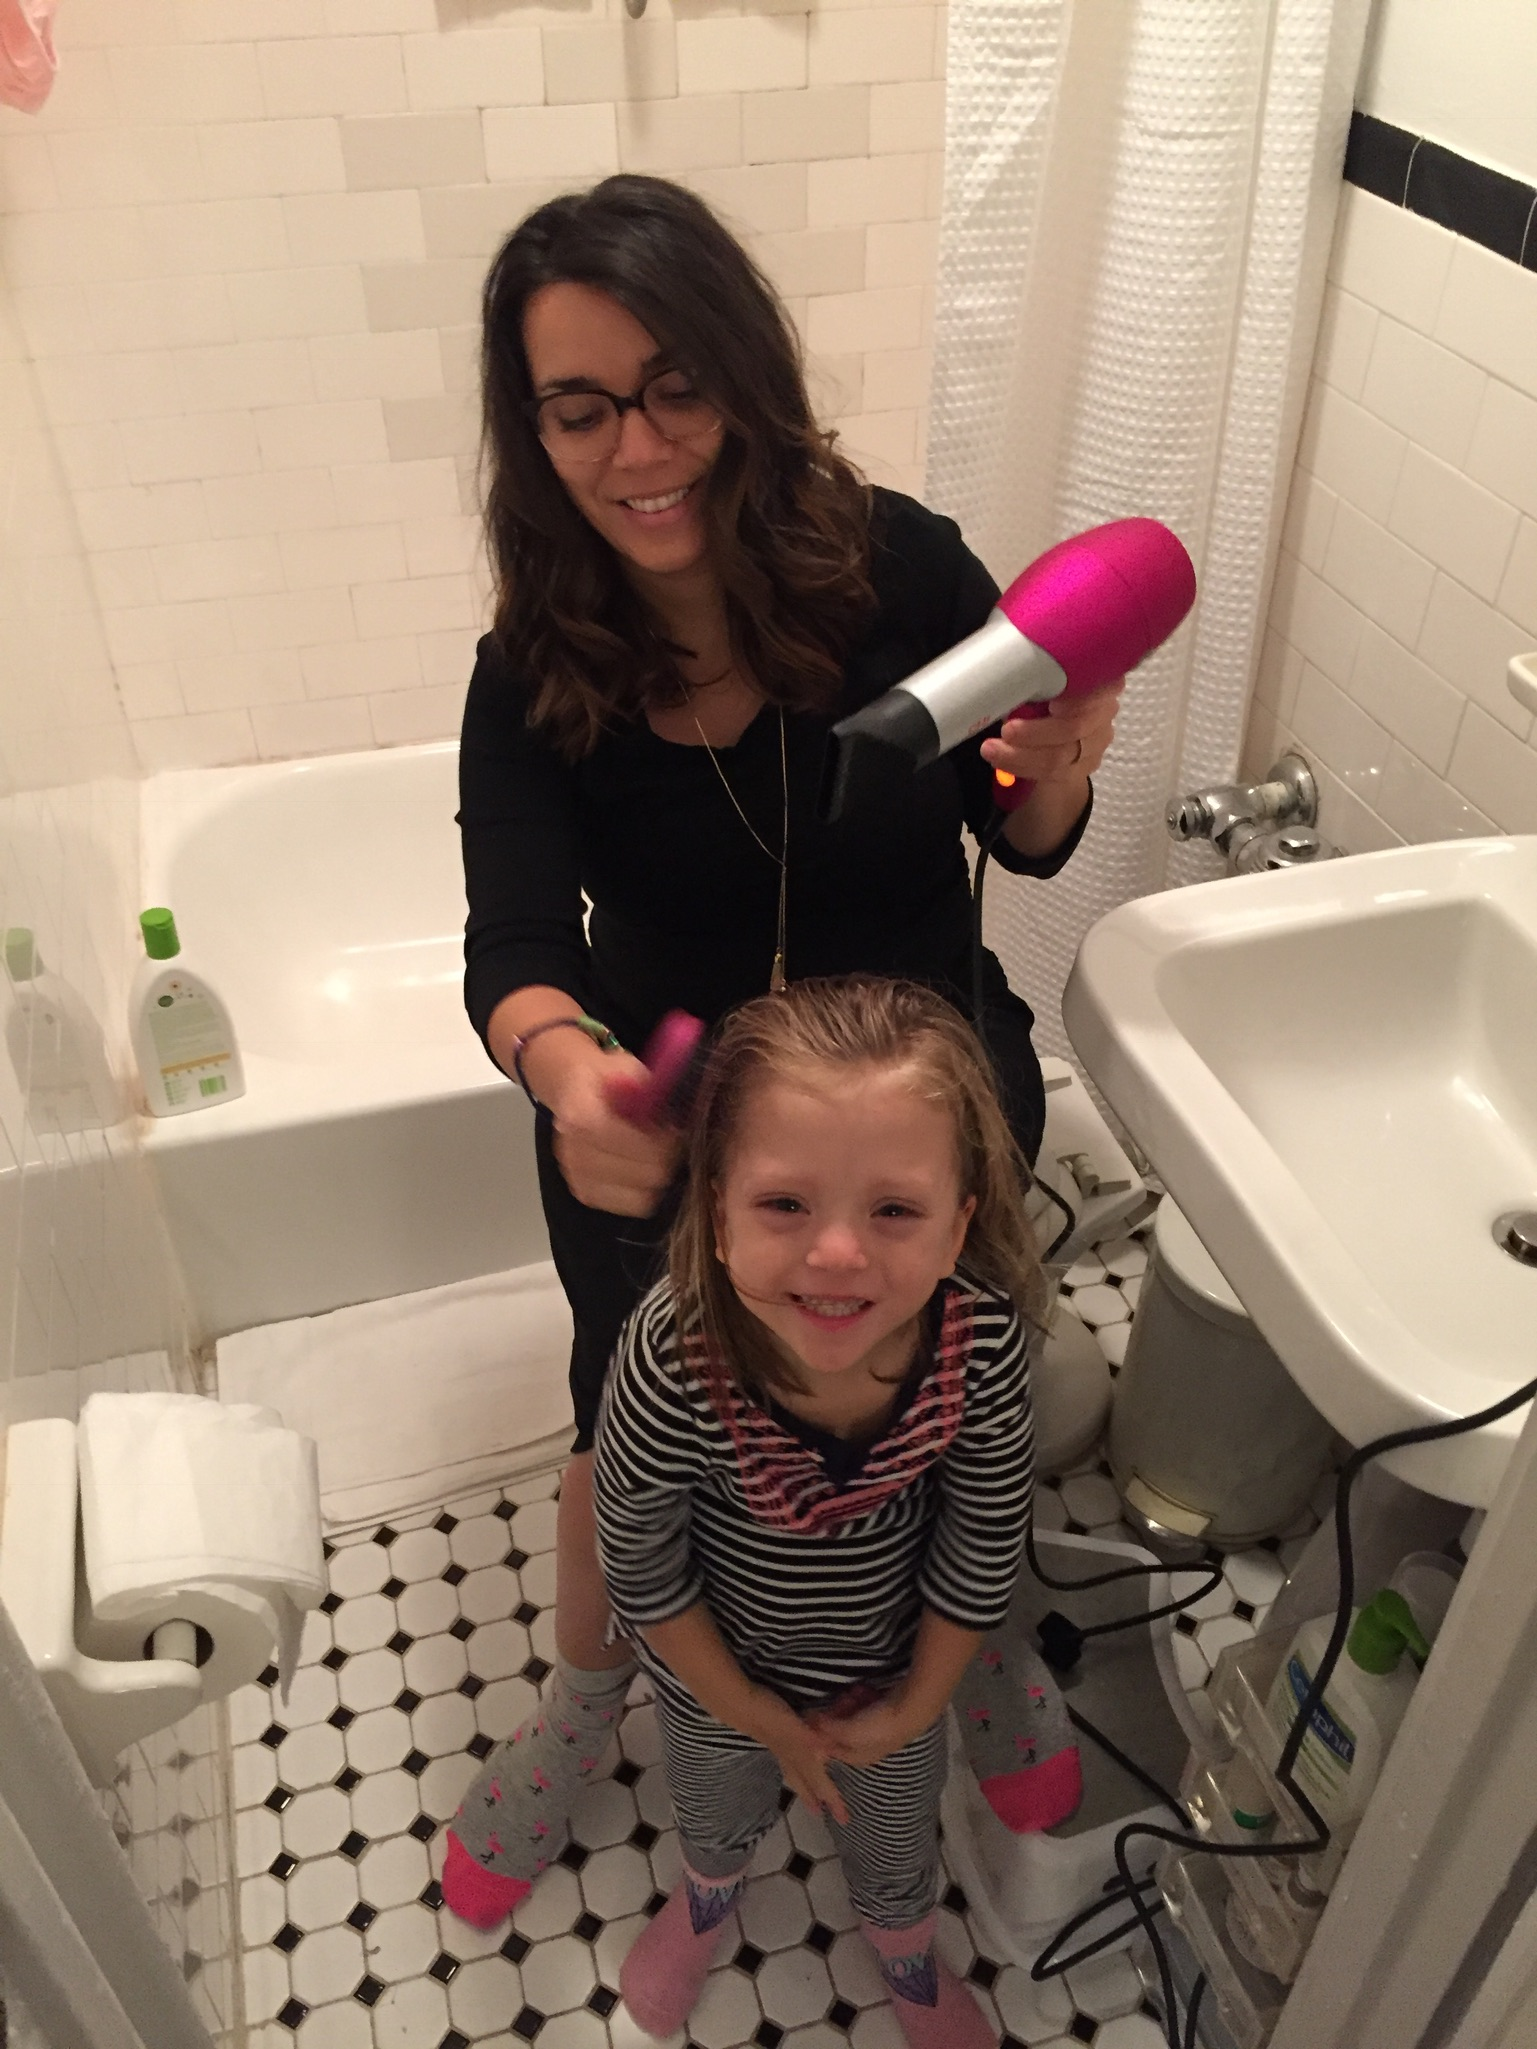 Now that it's getting colder, sometimes Lucie asks us to blow dry her hair after her bath so her hair will dry faster and so she can warm up. It's one of her favorite things to do.